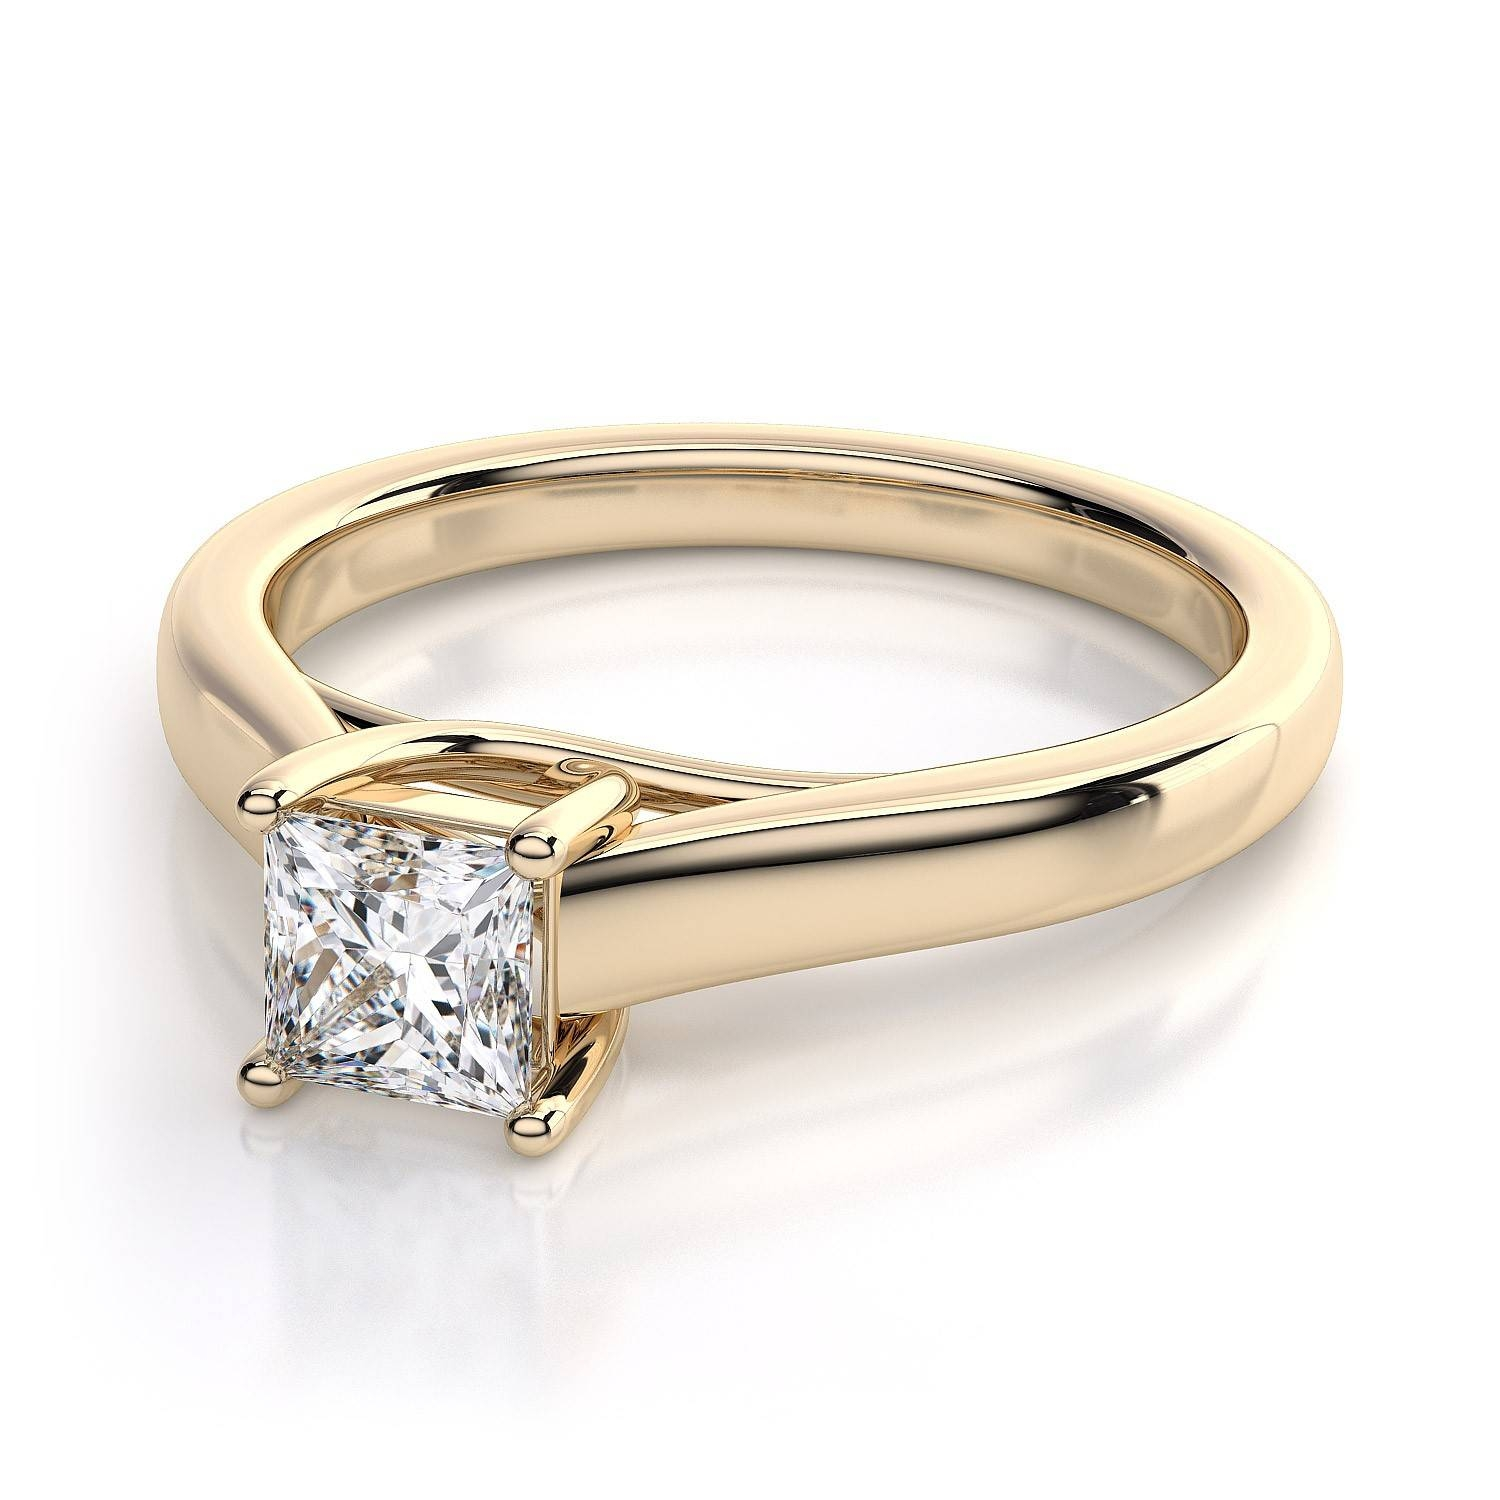 Princess Cut Trellis Solitaire Diamond Engagement Ring In 18K For Engagement Rings 18K Yellow Gold (View 10 of 15)